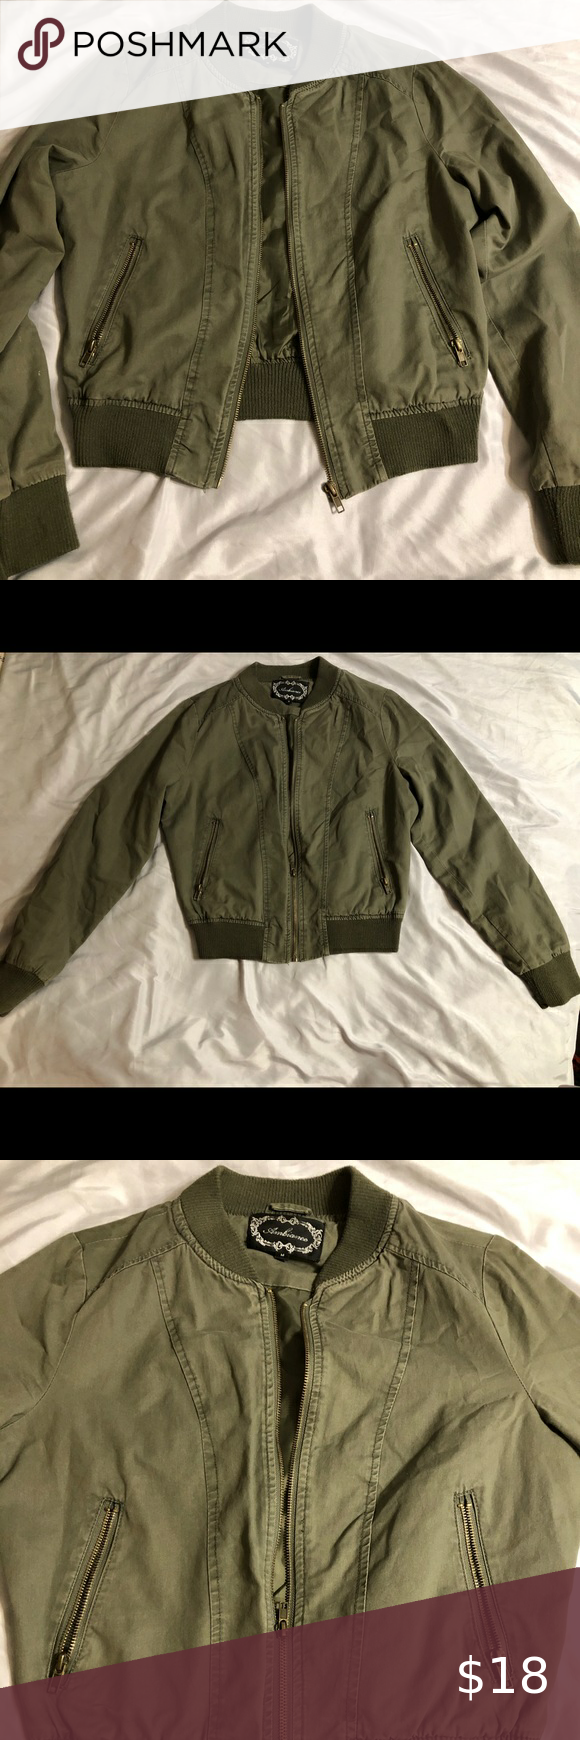 Ambiance Apparel Women S Green Bomber Jacket Green Bomber Jacket Ambiance Apparel Jackets [ 1740 x 580 Pixel ]